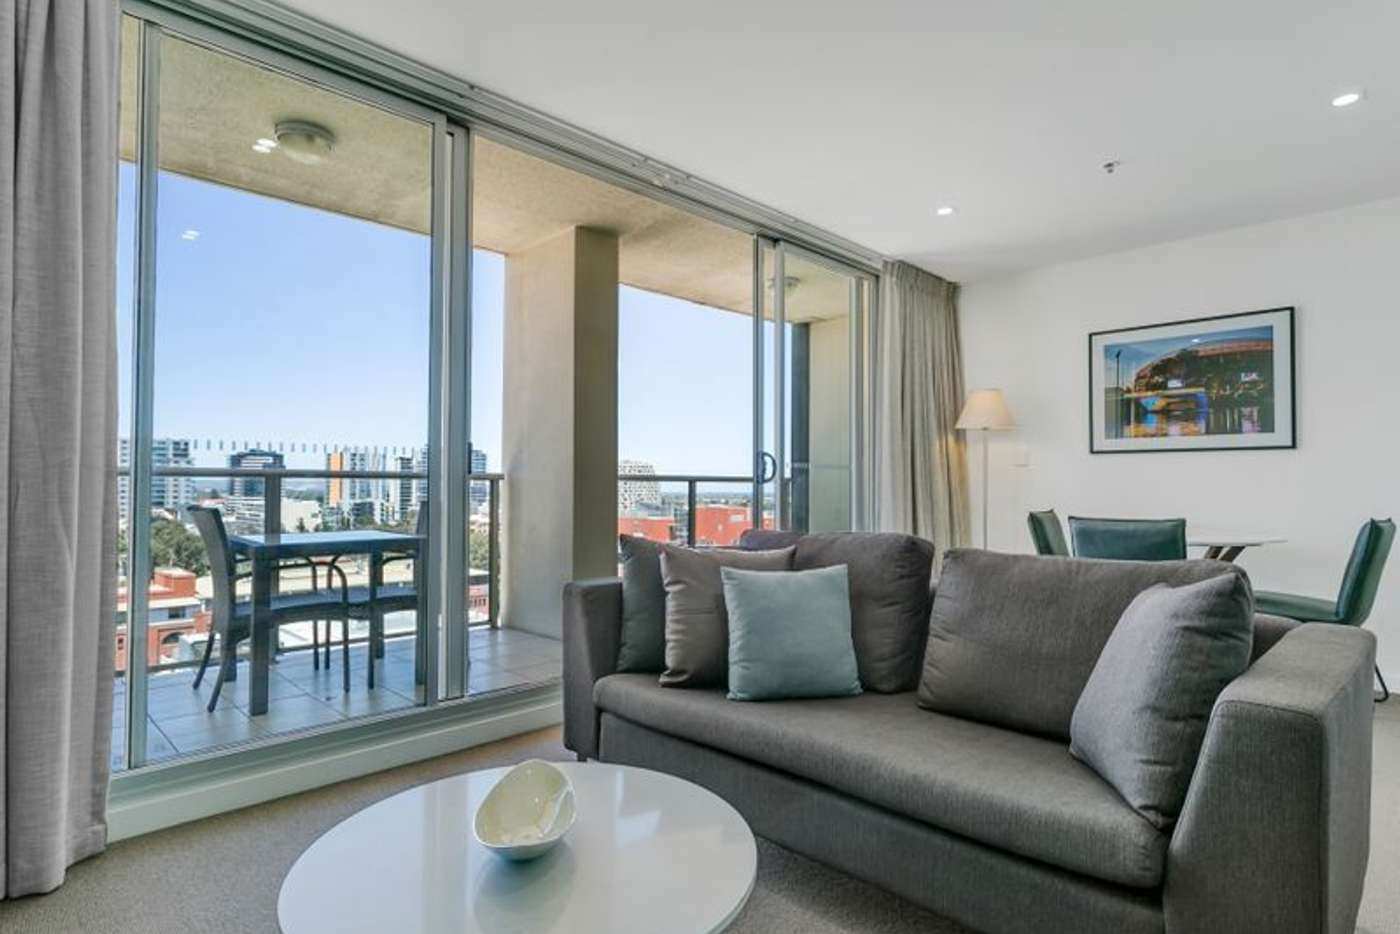 Fifth view of Homely apartment listing, 1509/96 North Terrace, Adelaide SA 5000